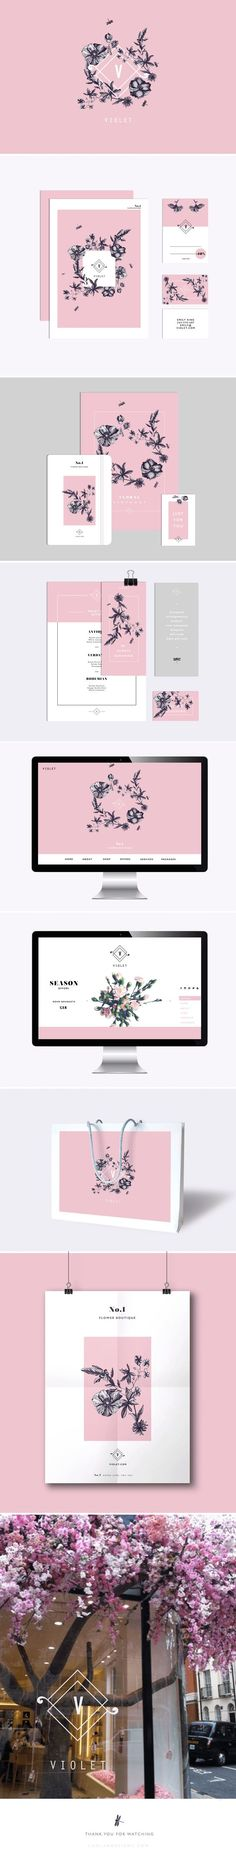 Violet Flower Boutique Branding | Fivestar Branding – Design and Branding Agency & Inspiration Gallery